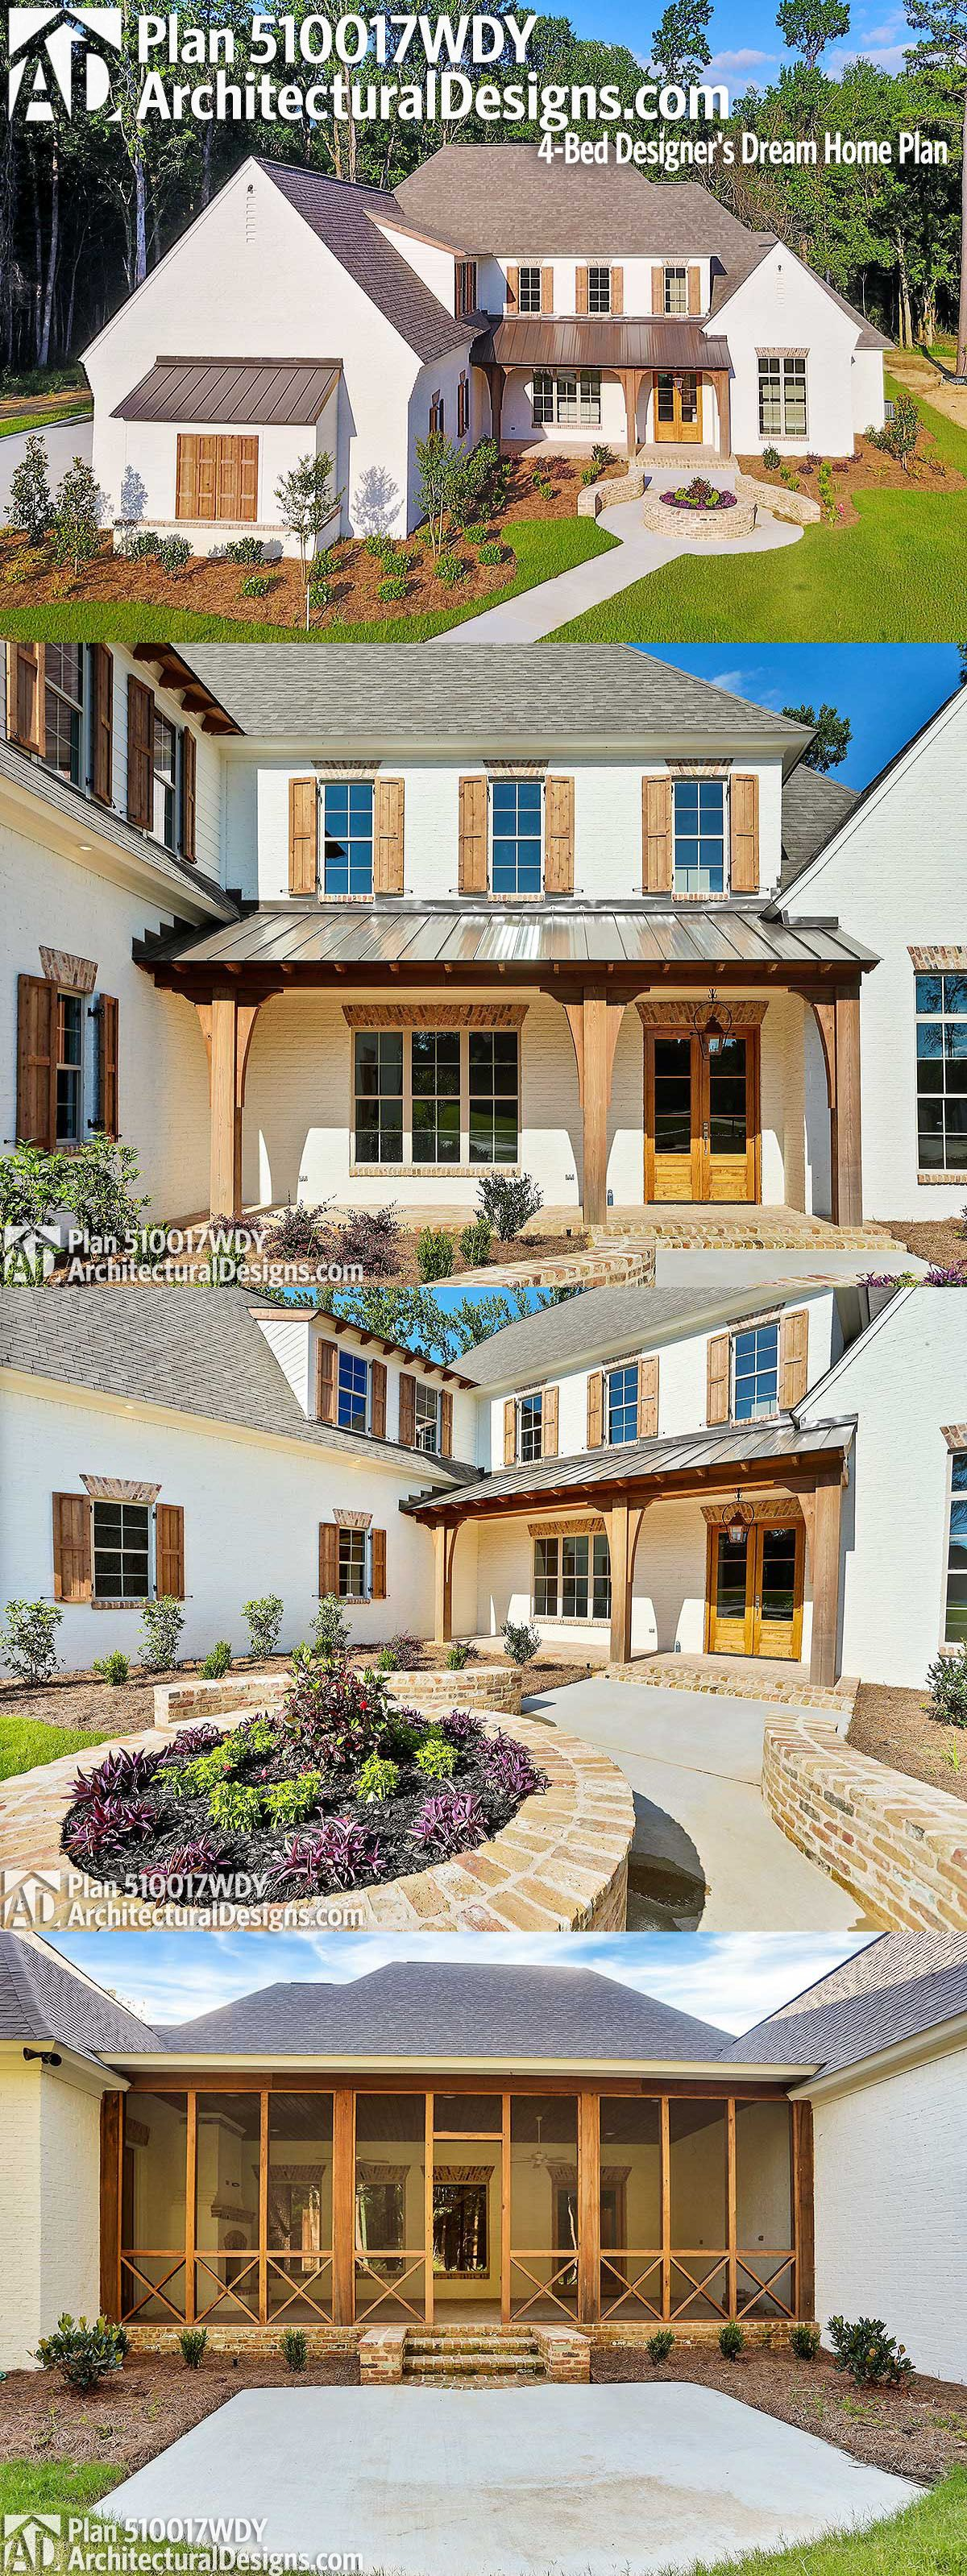 architectural designs 4 bed house plan 510017wdy has a 3 car side